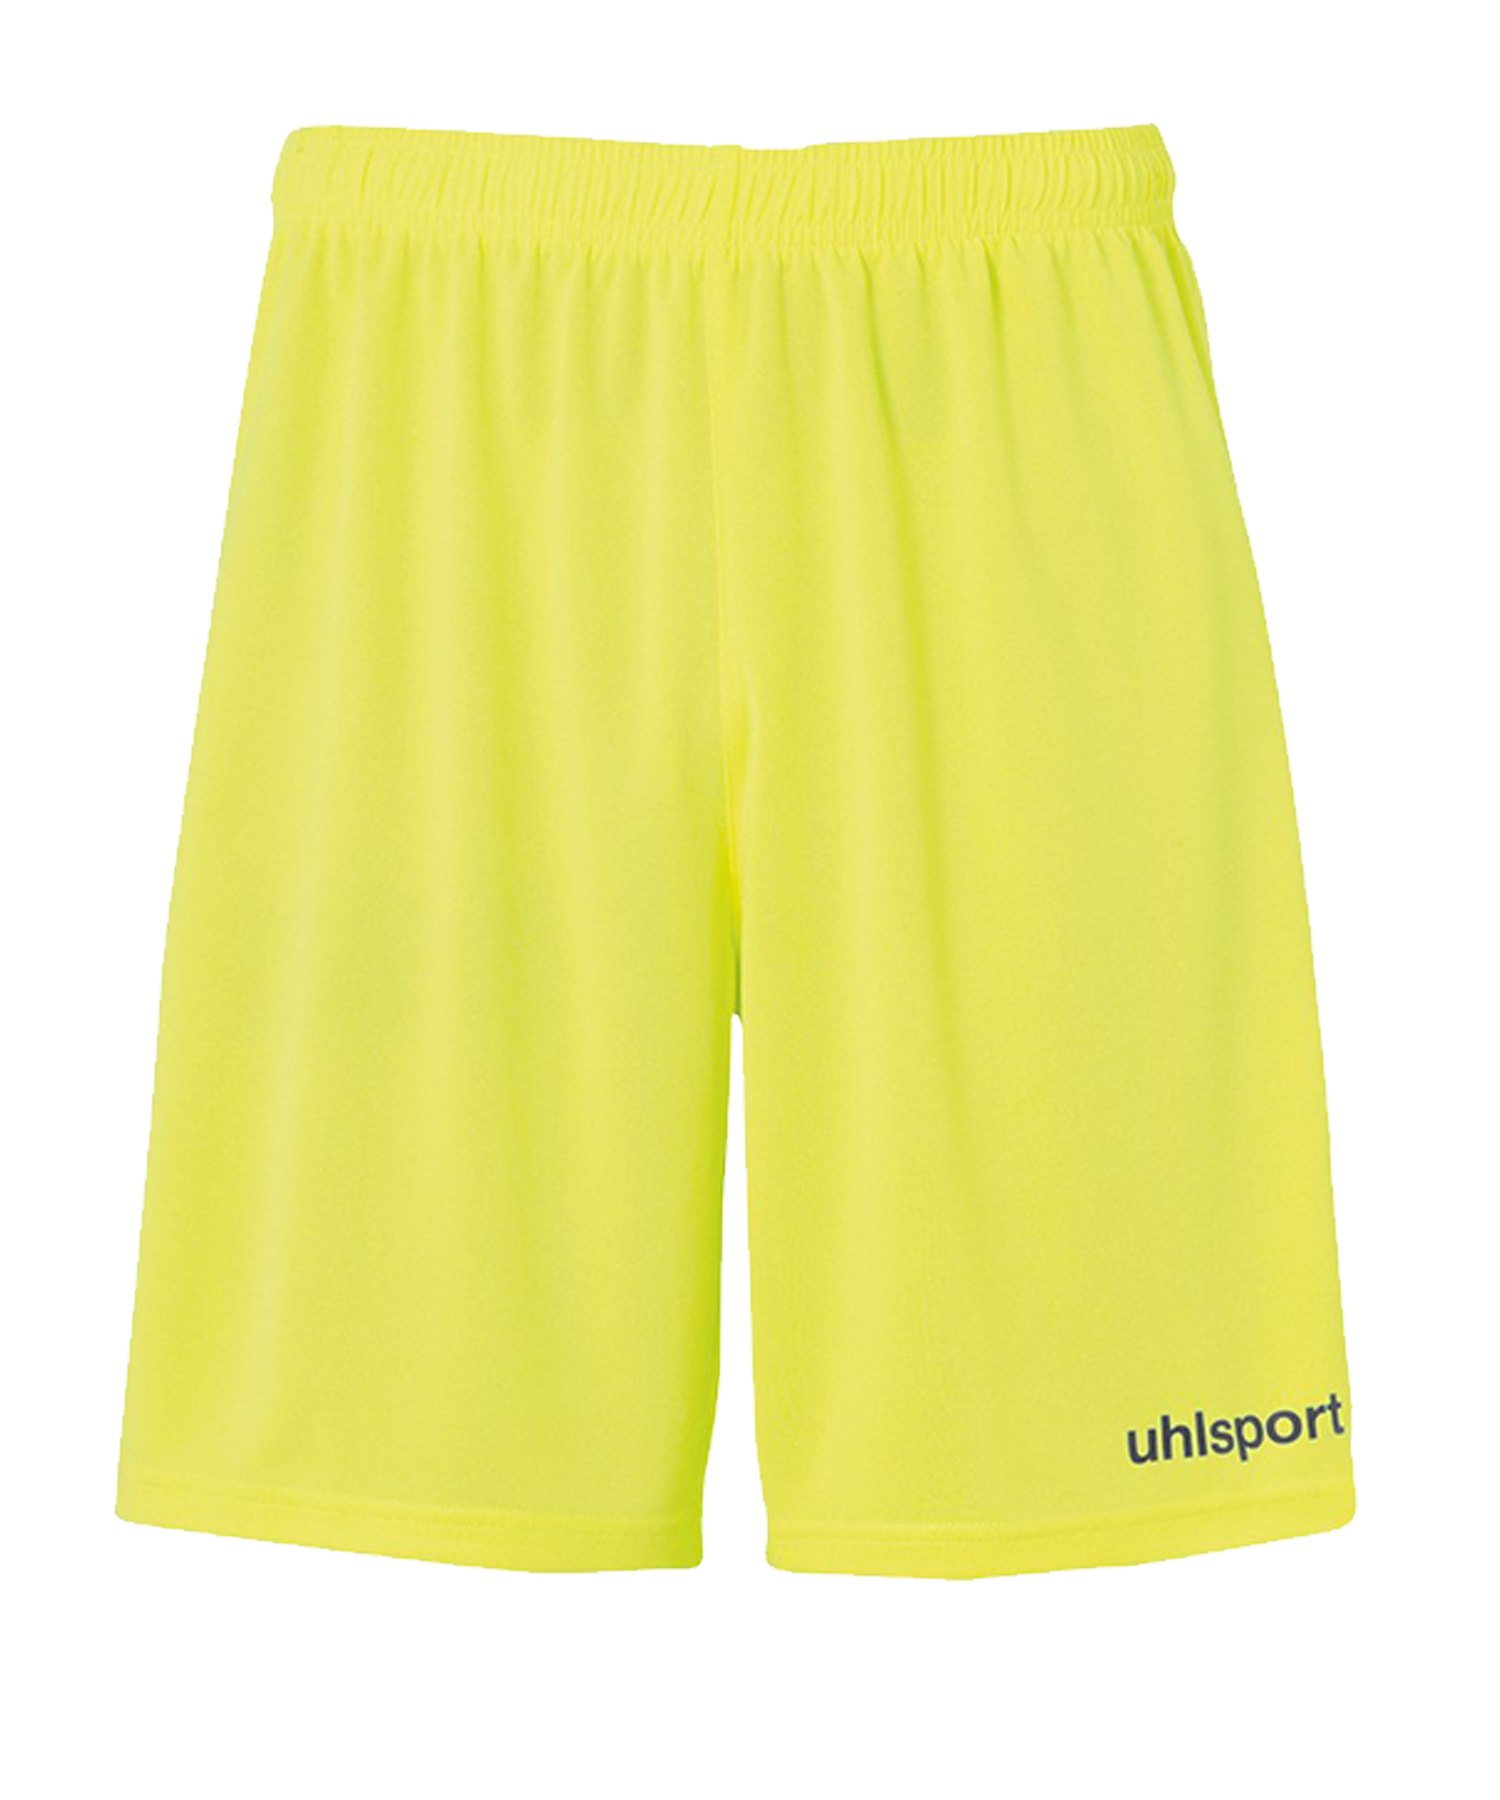 Uhlsport Center Basic Short ohne Innenslip F21